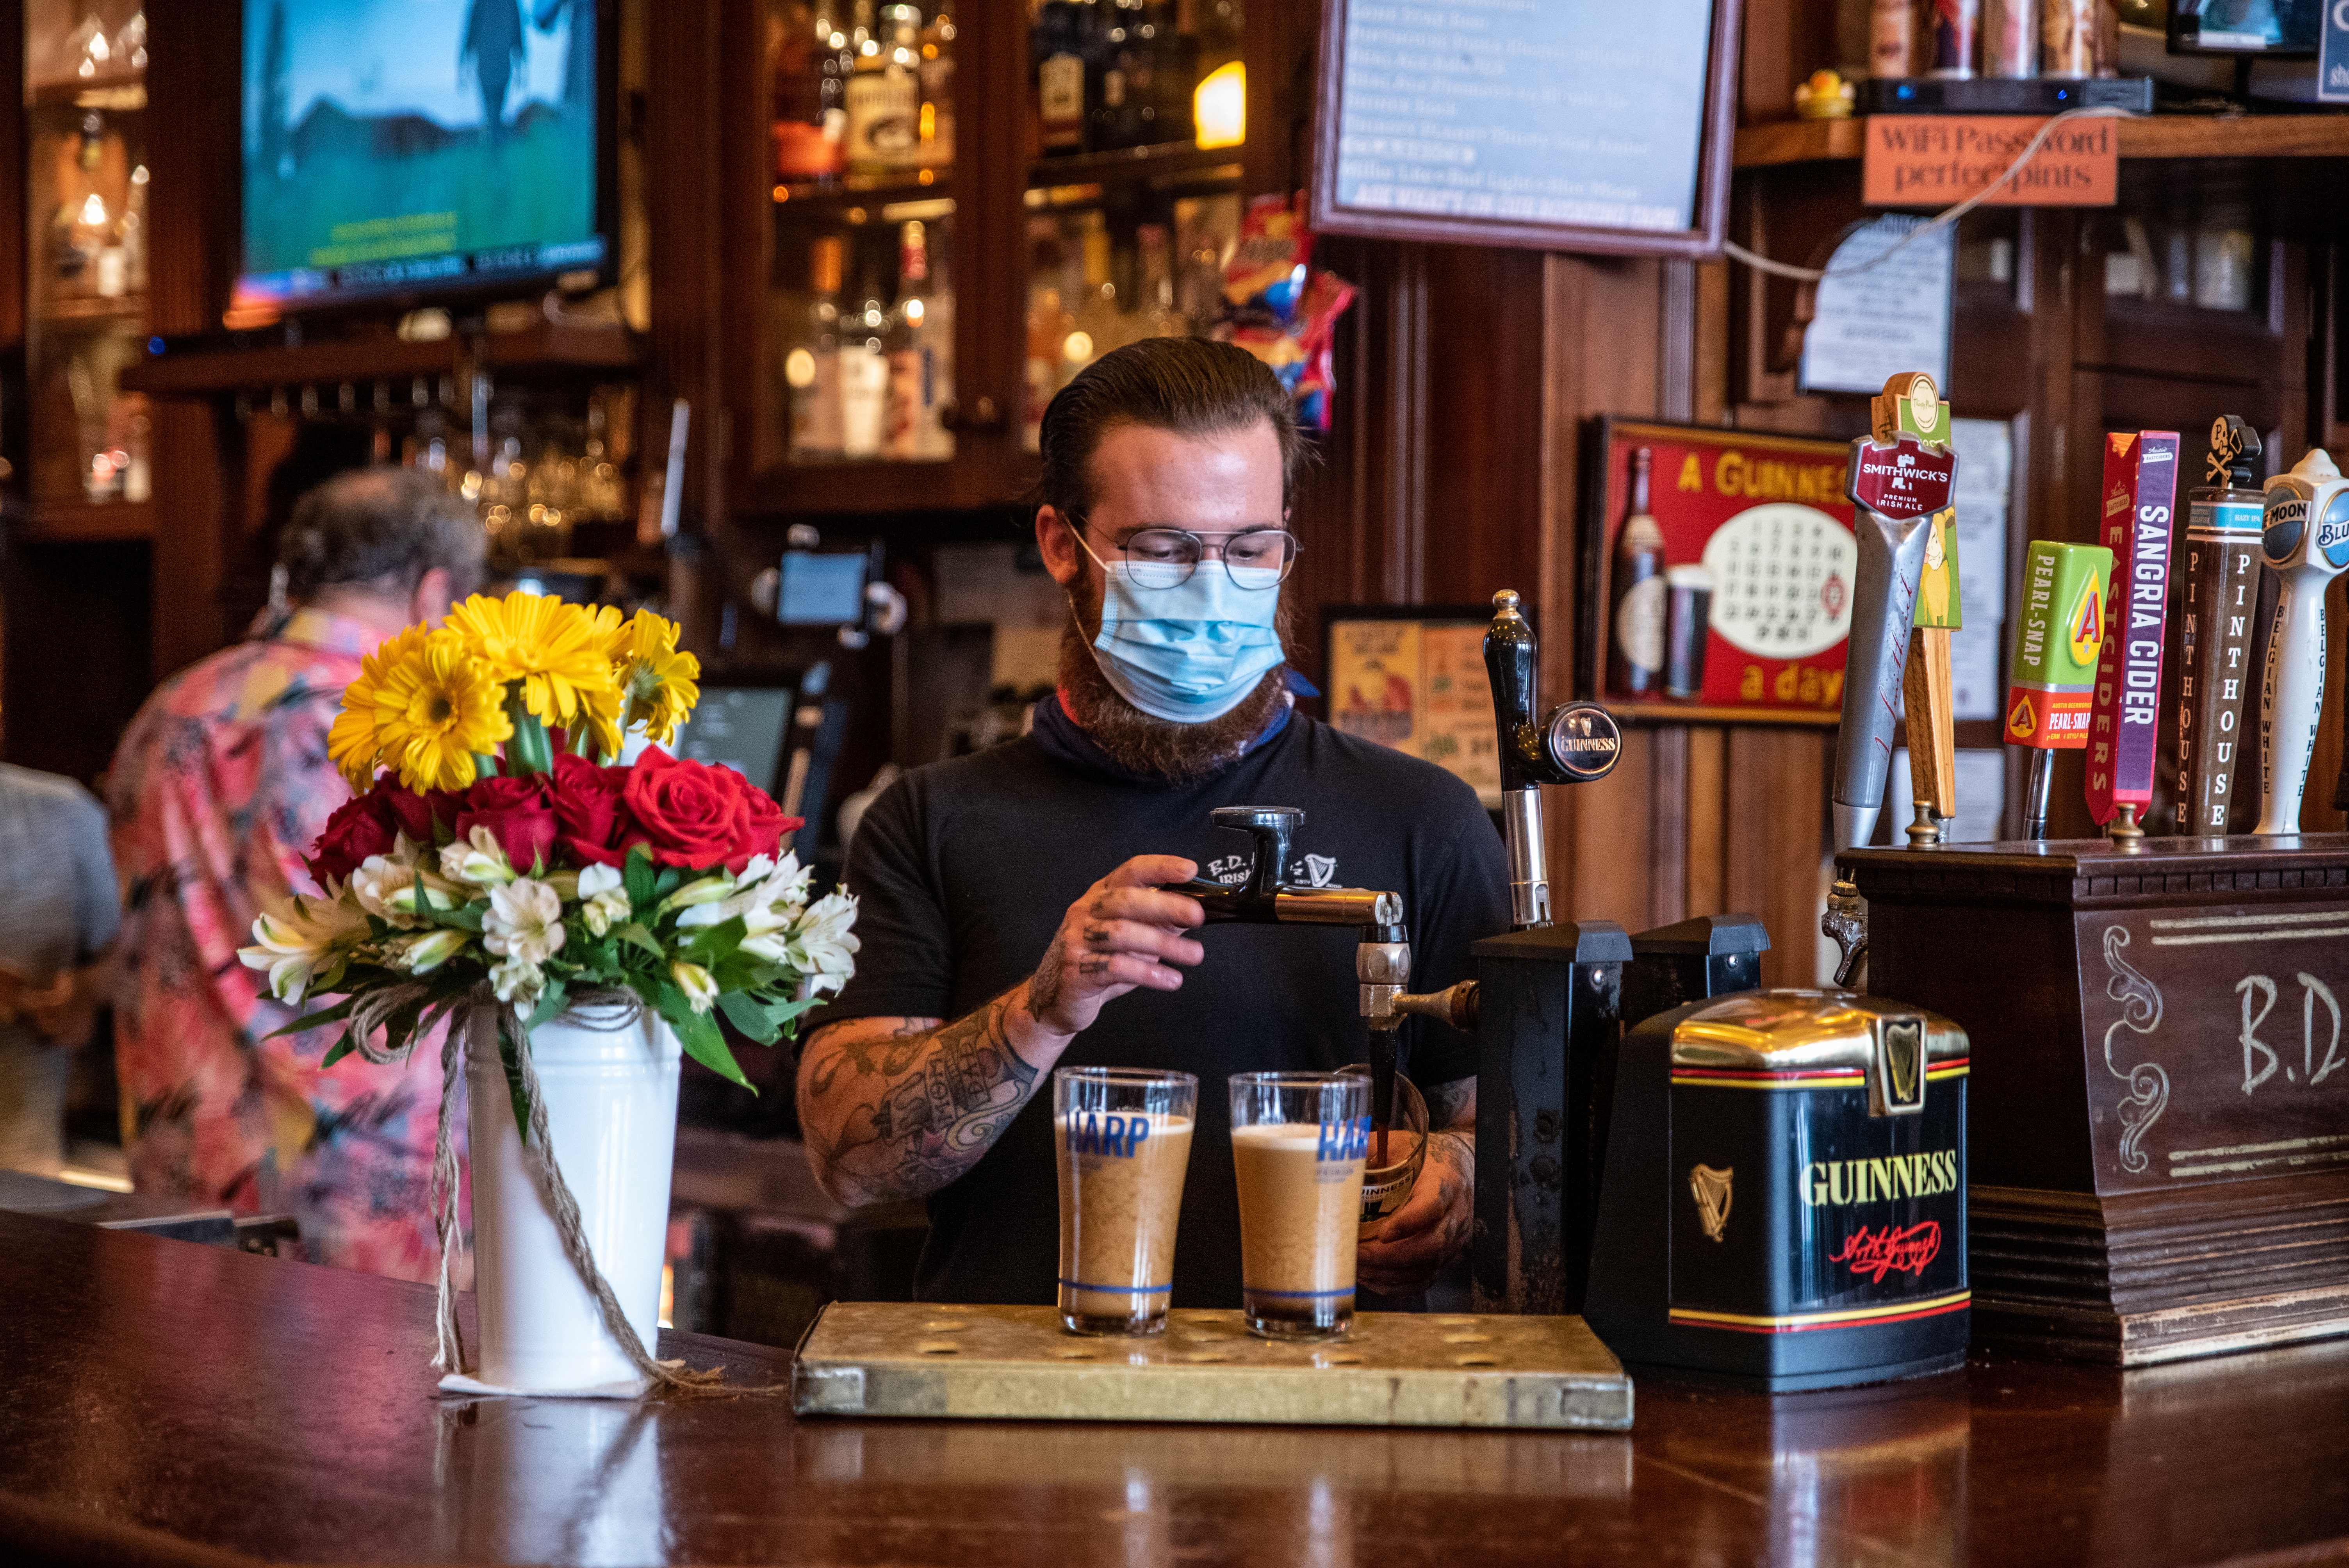 A bartender pours drinks for customers at a bar in Austin, Texas on May 22, 2020. (Photo by SERGIO FLORES/AFP via Getty Images)